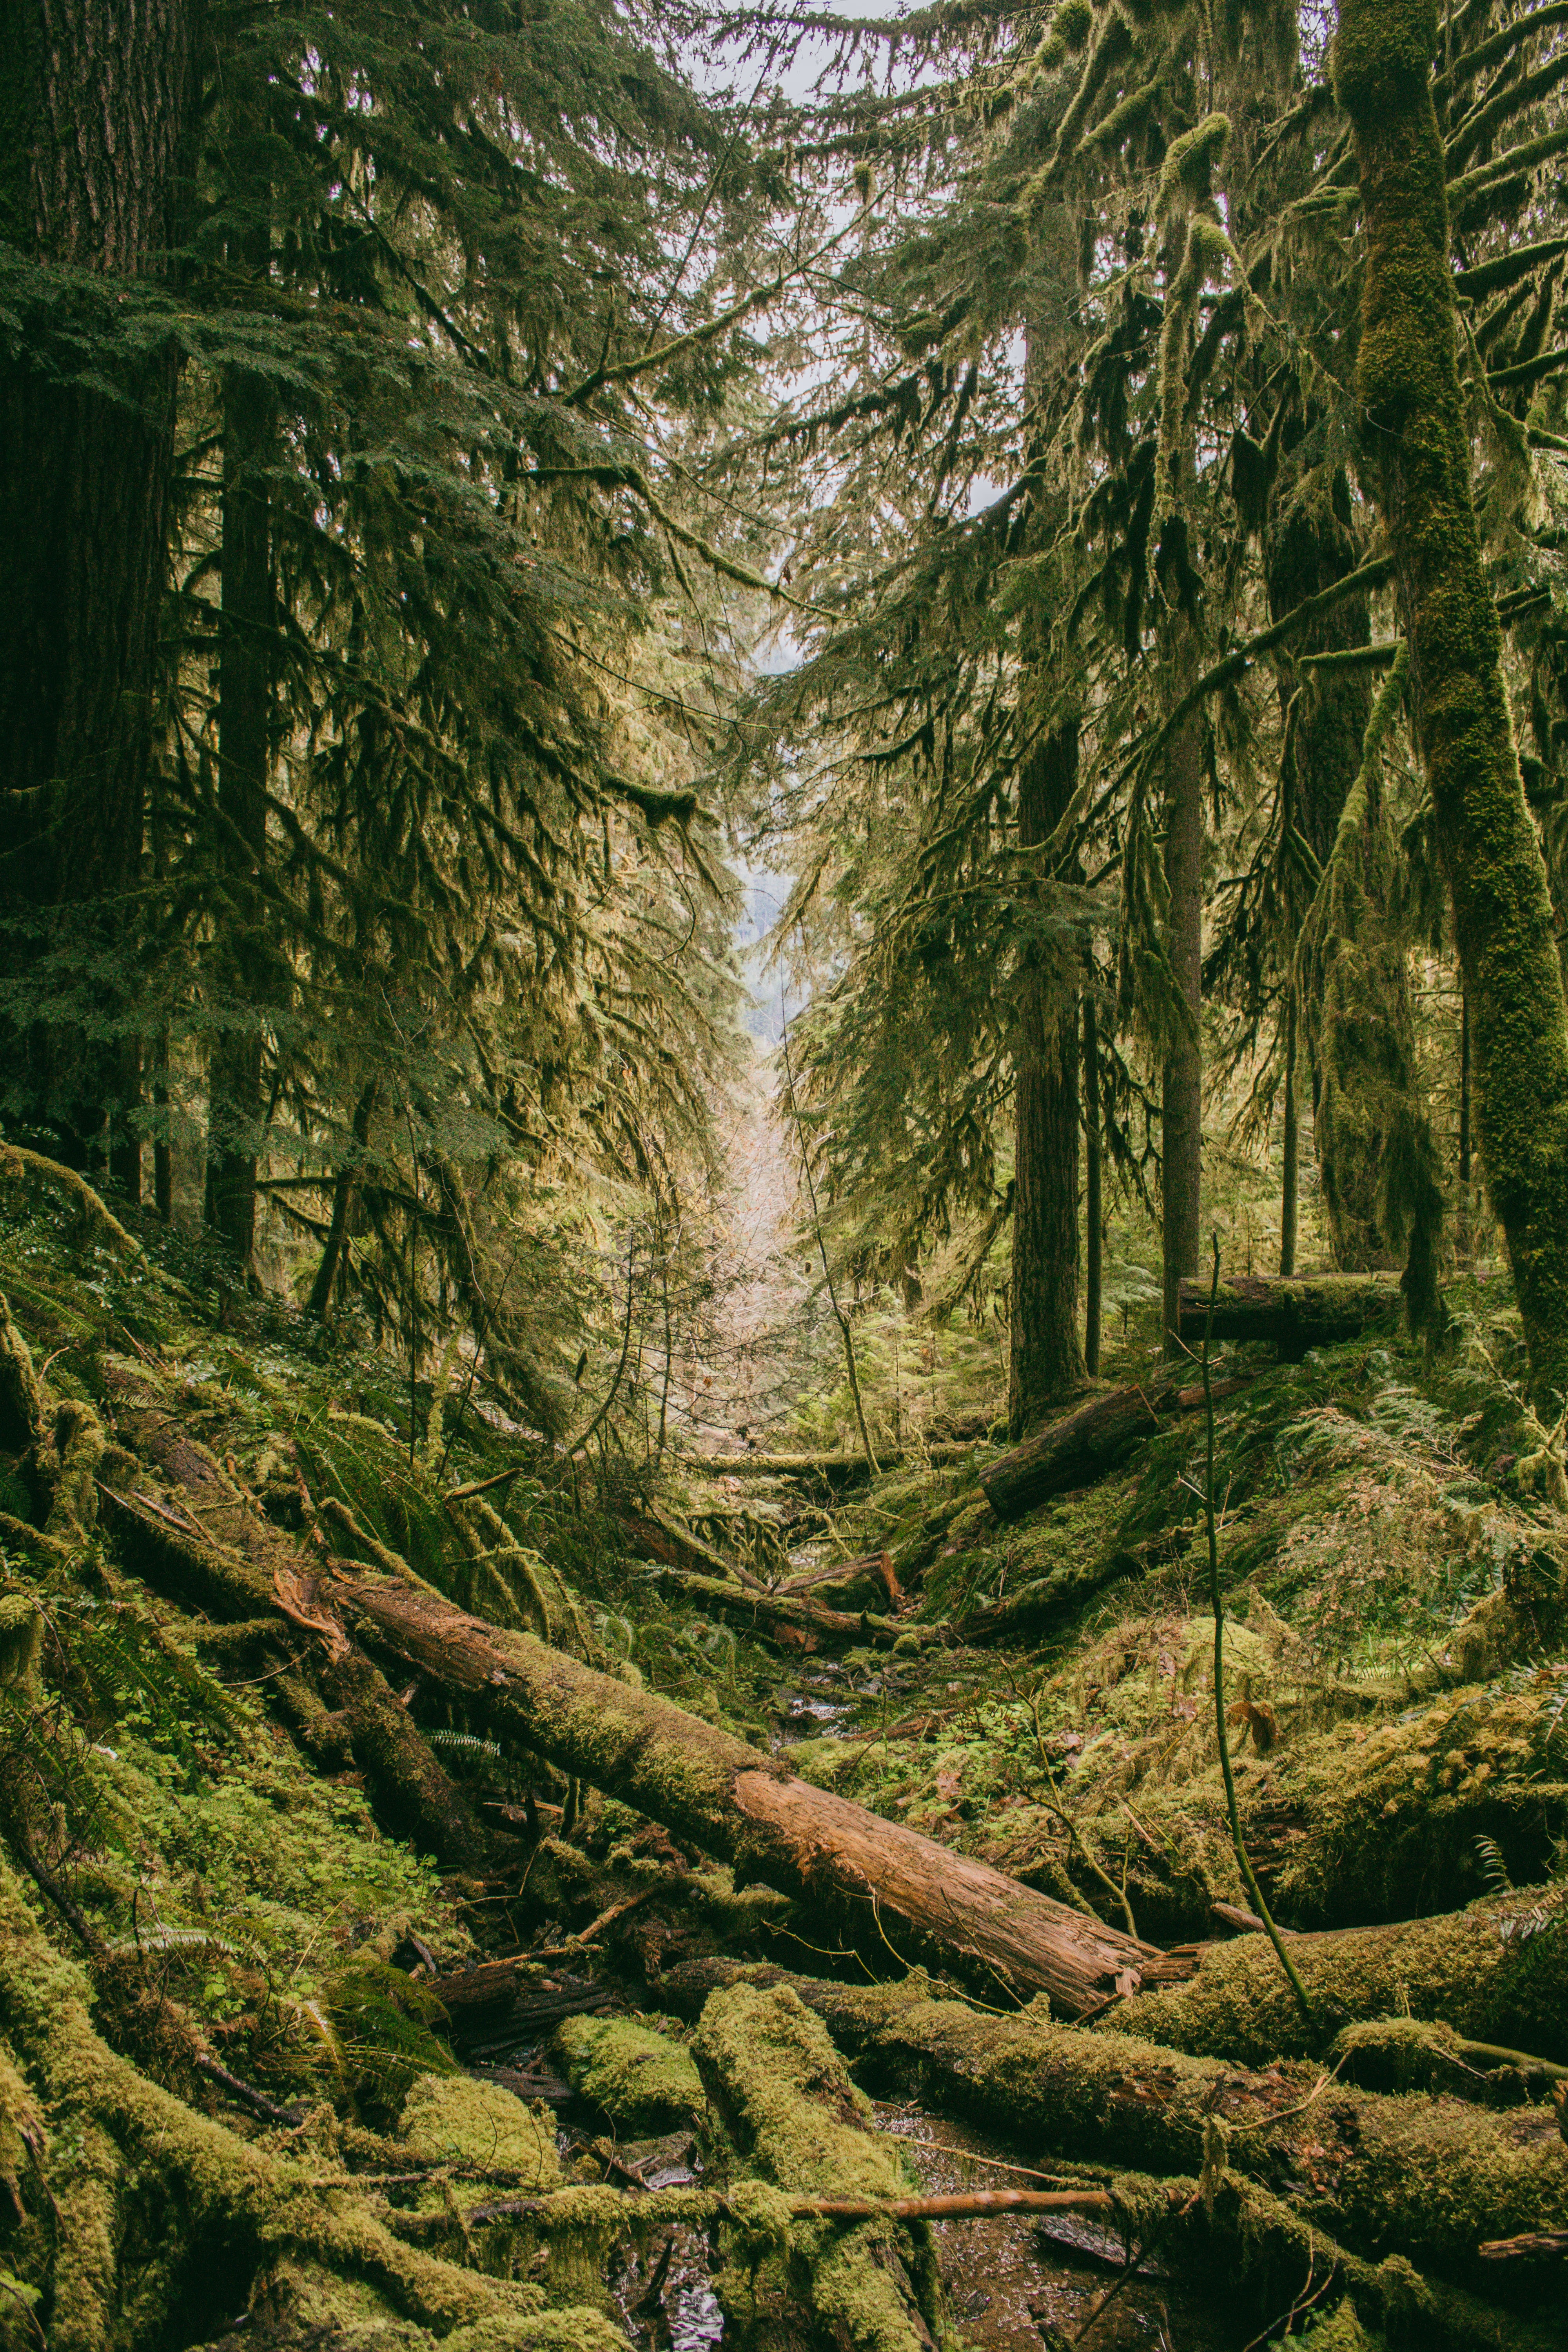 An evergreen forest with moss covering everything from tree trunks to fallen logs on the ground